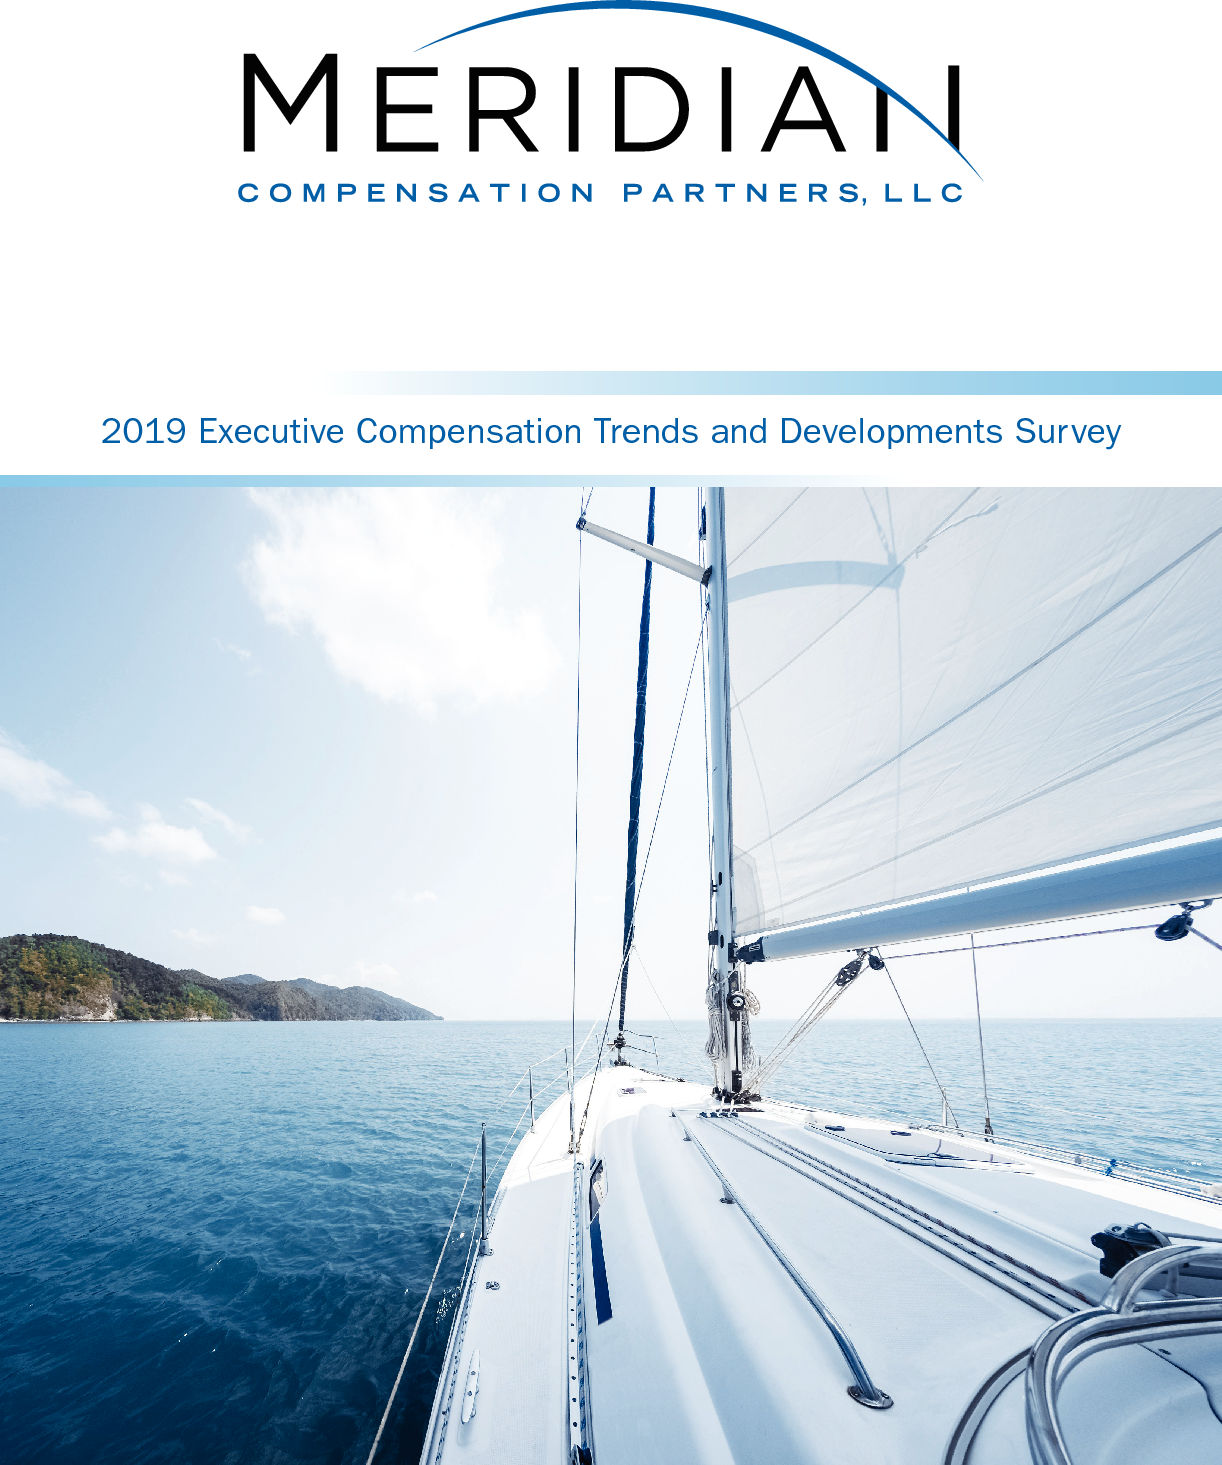 2019 Executive Compensation Trends and Developments (PDF)